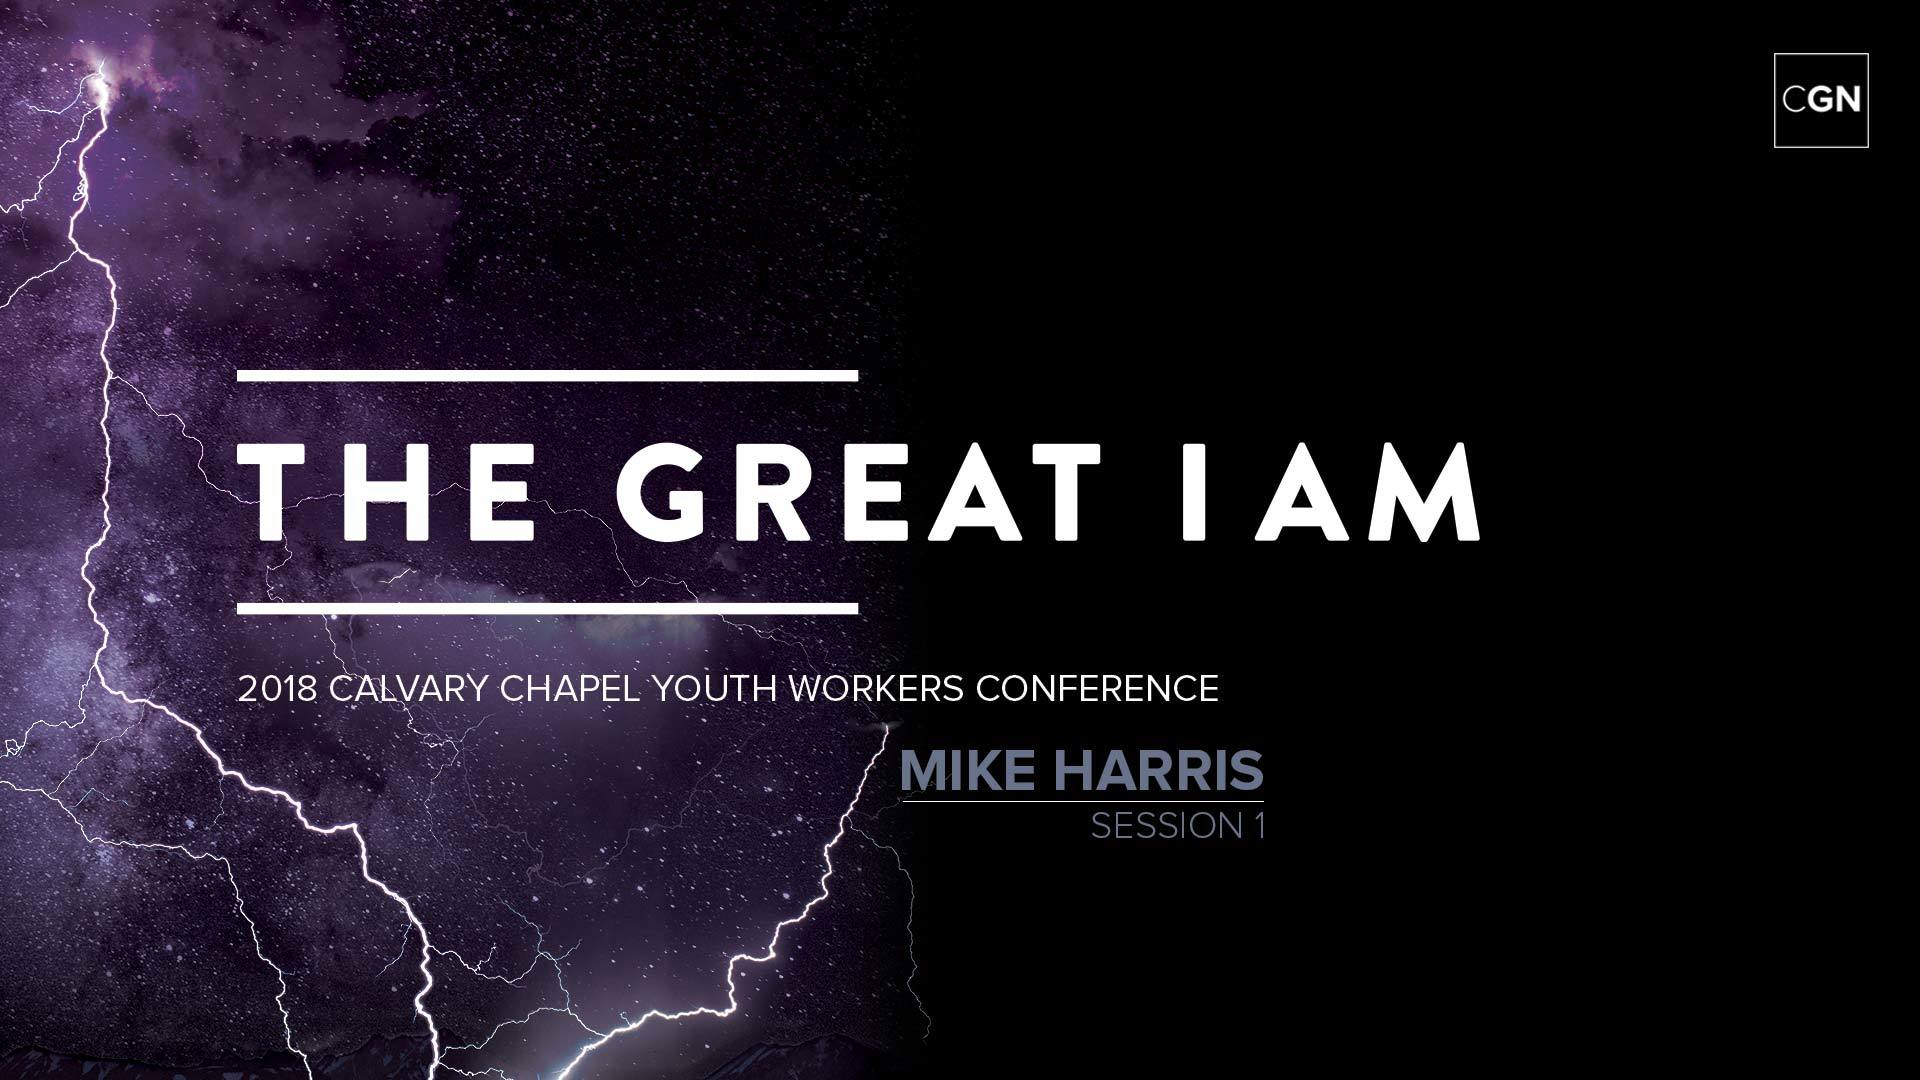 Mike Harris - Session 1